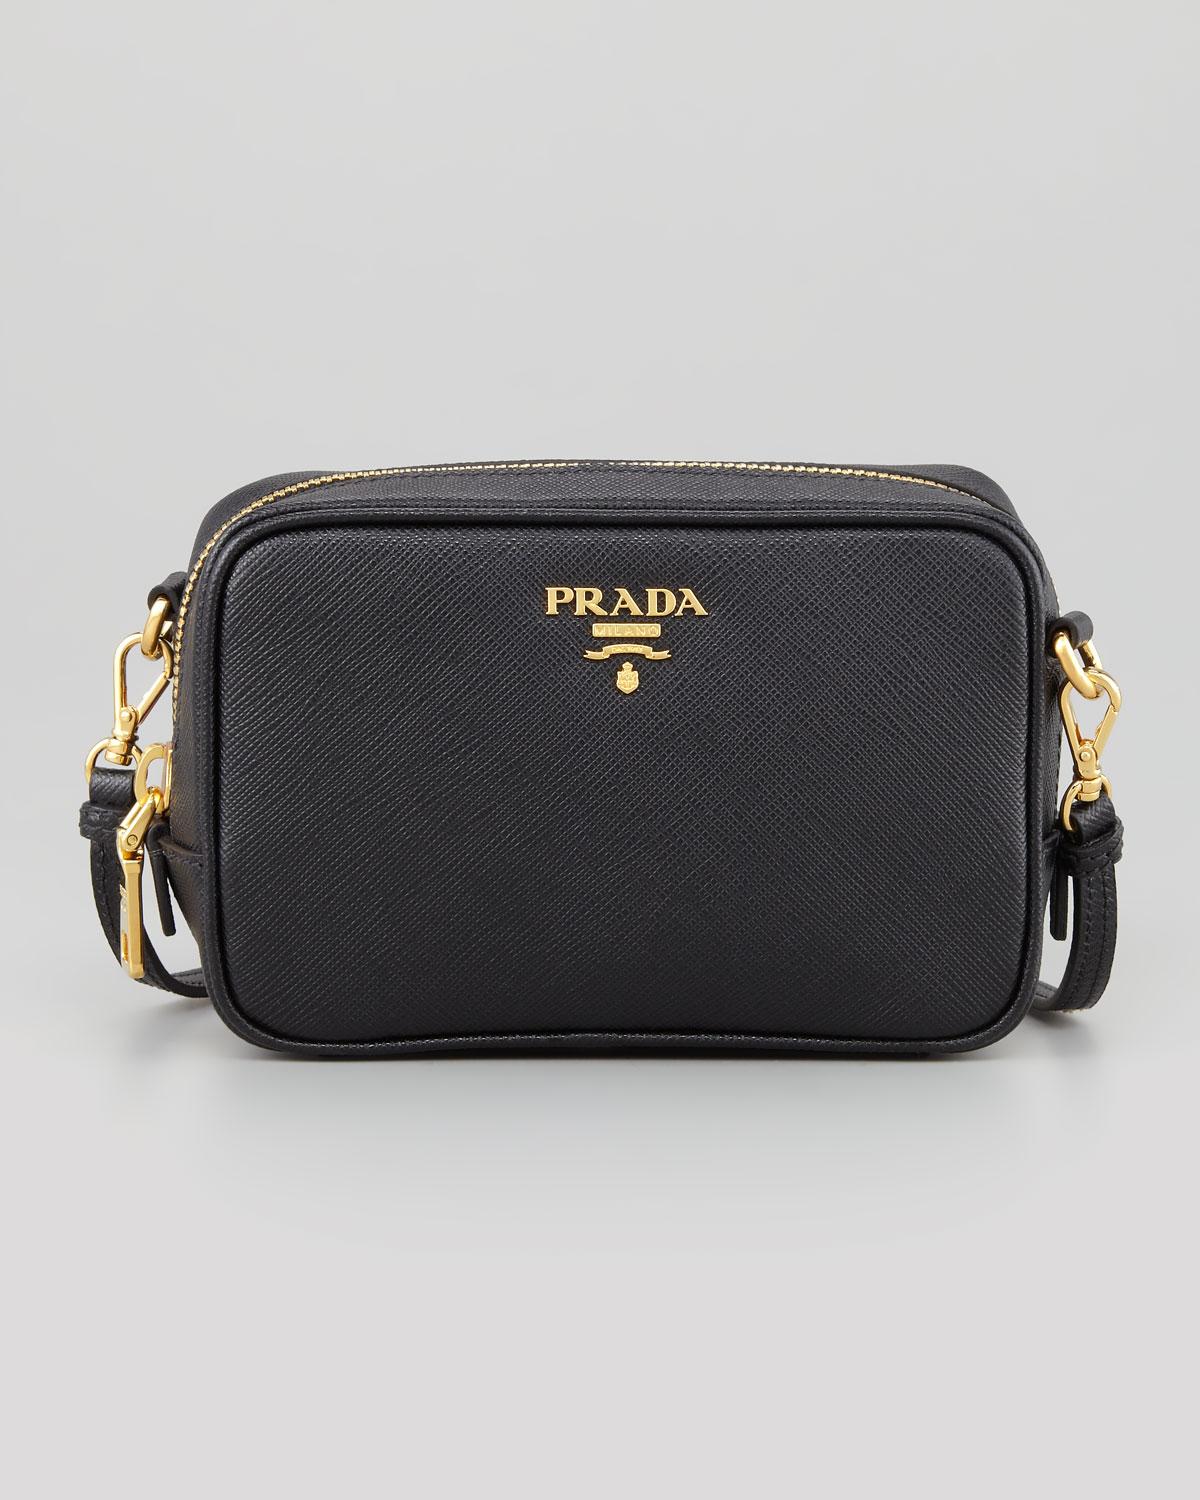 7490328b00d7 Prada Saffiano Mini Zip Crossbody Bag in Black - Lyst